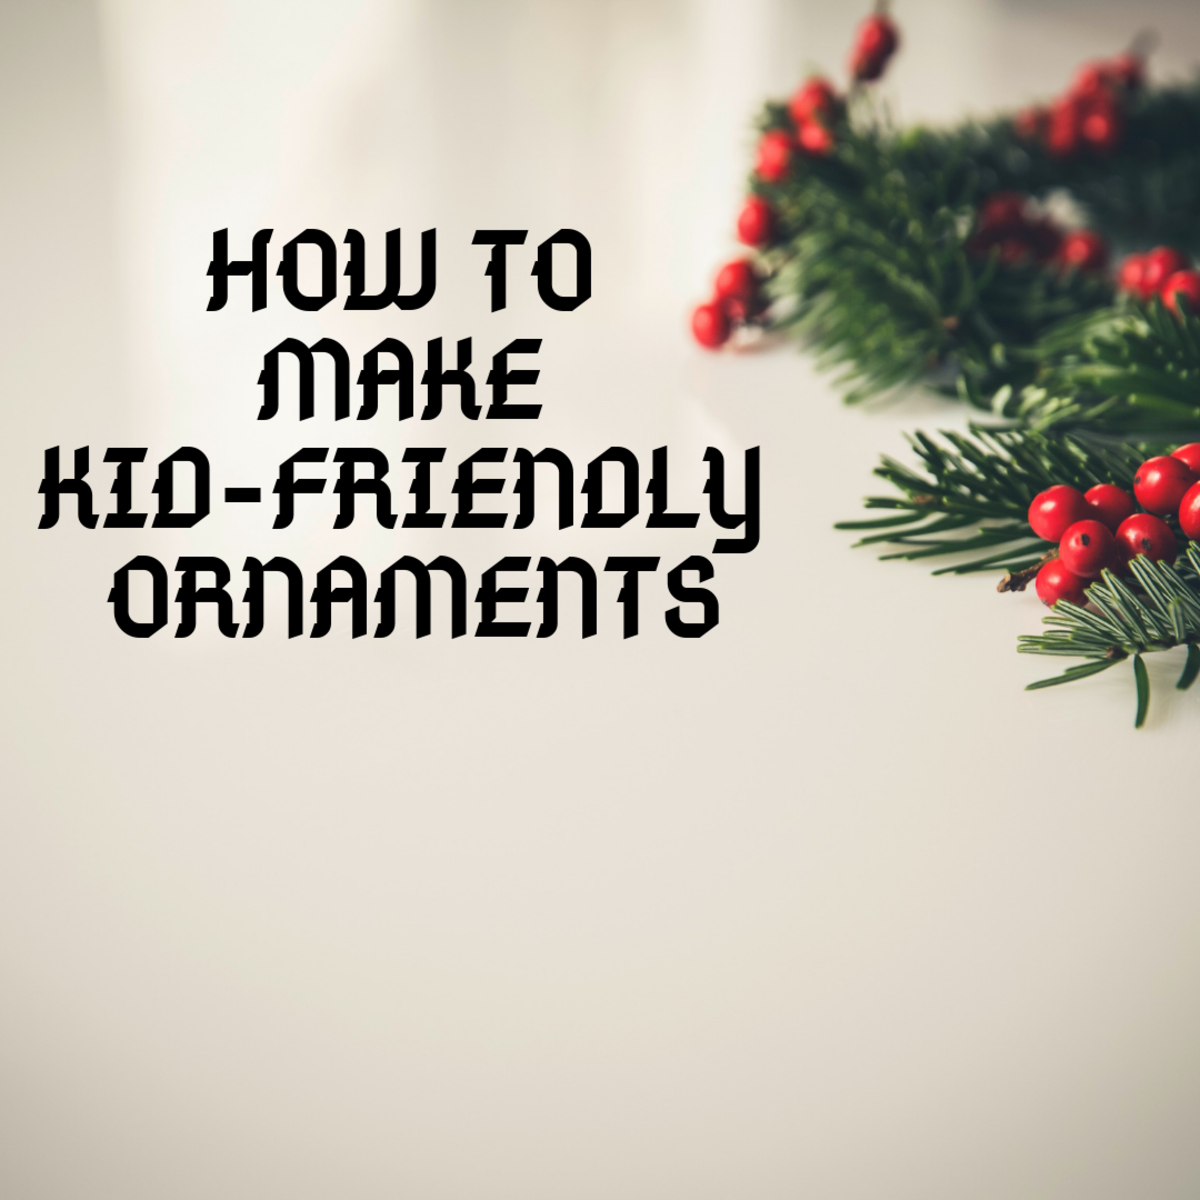 Learn how to make ornaments to hang on trees, to hang from garlands, or on doorknobs.